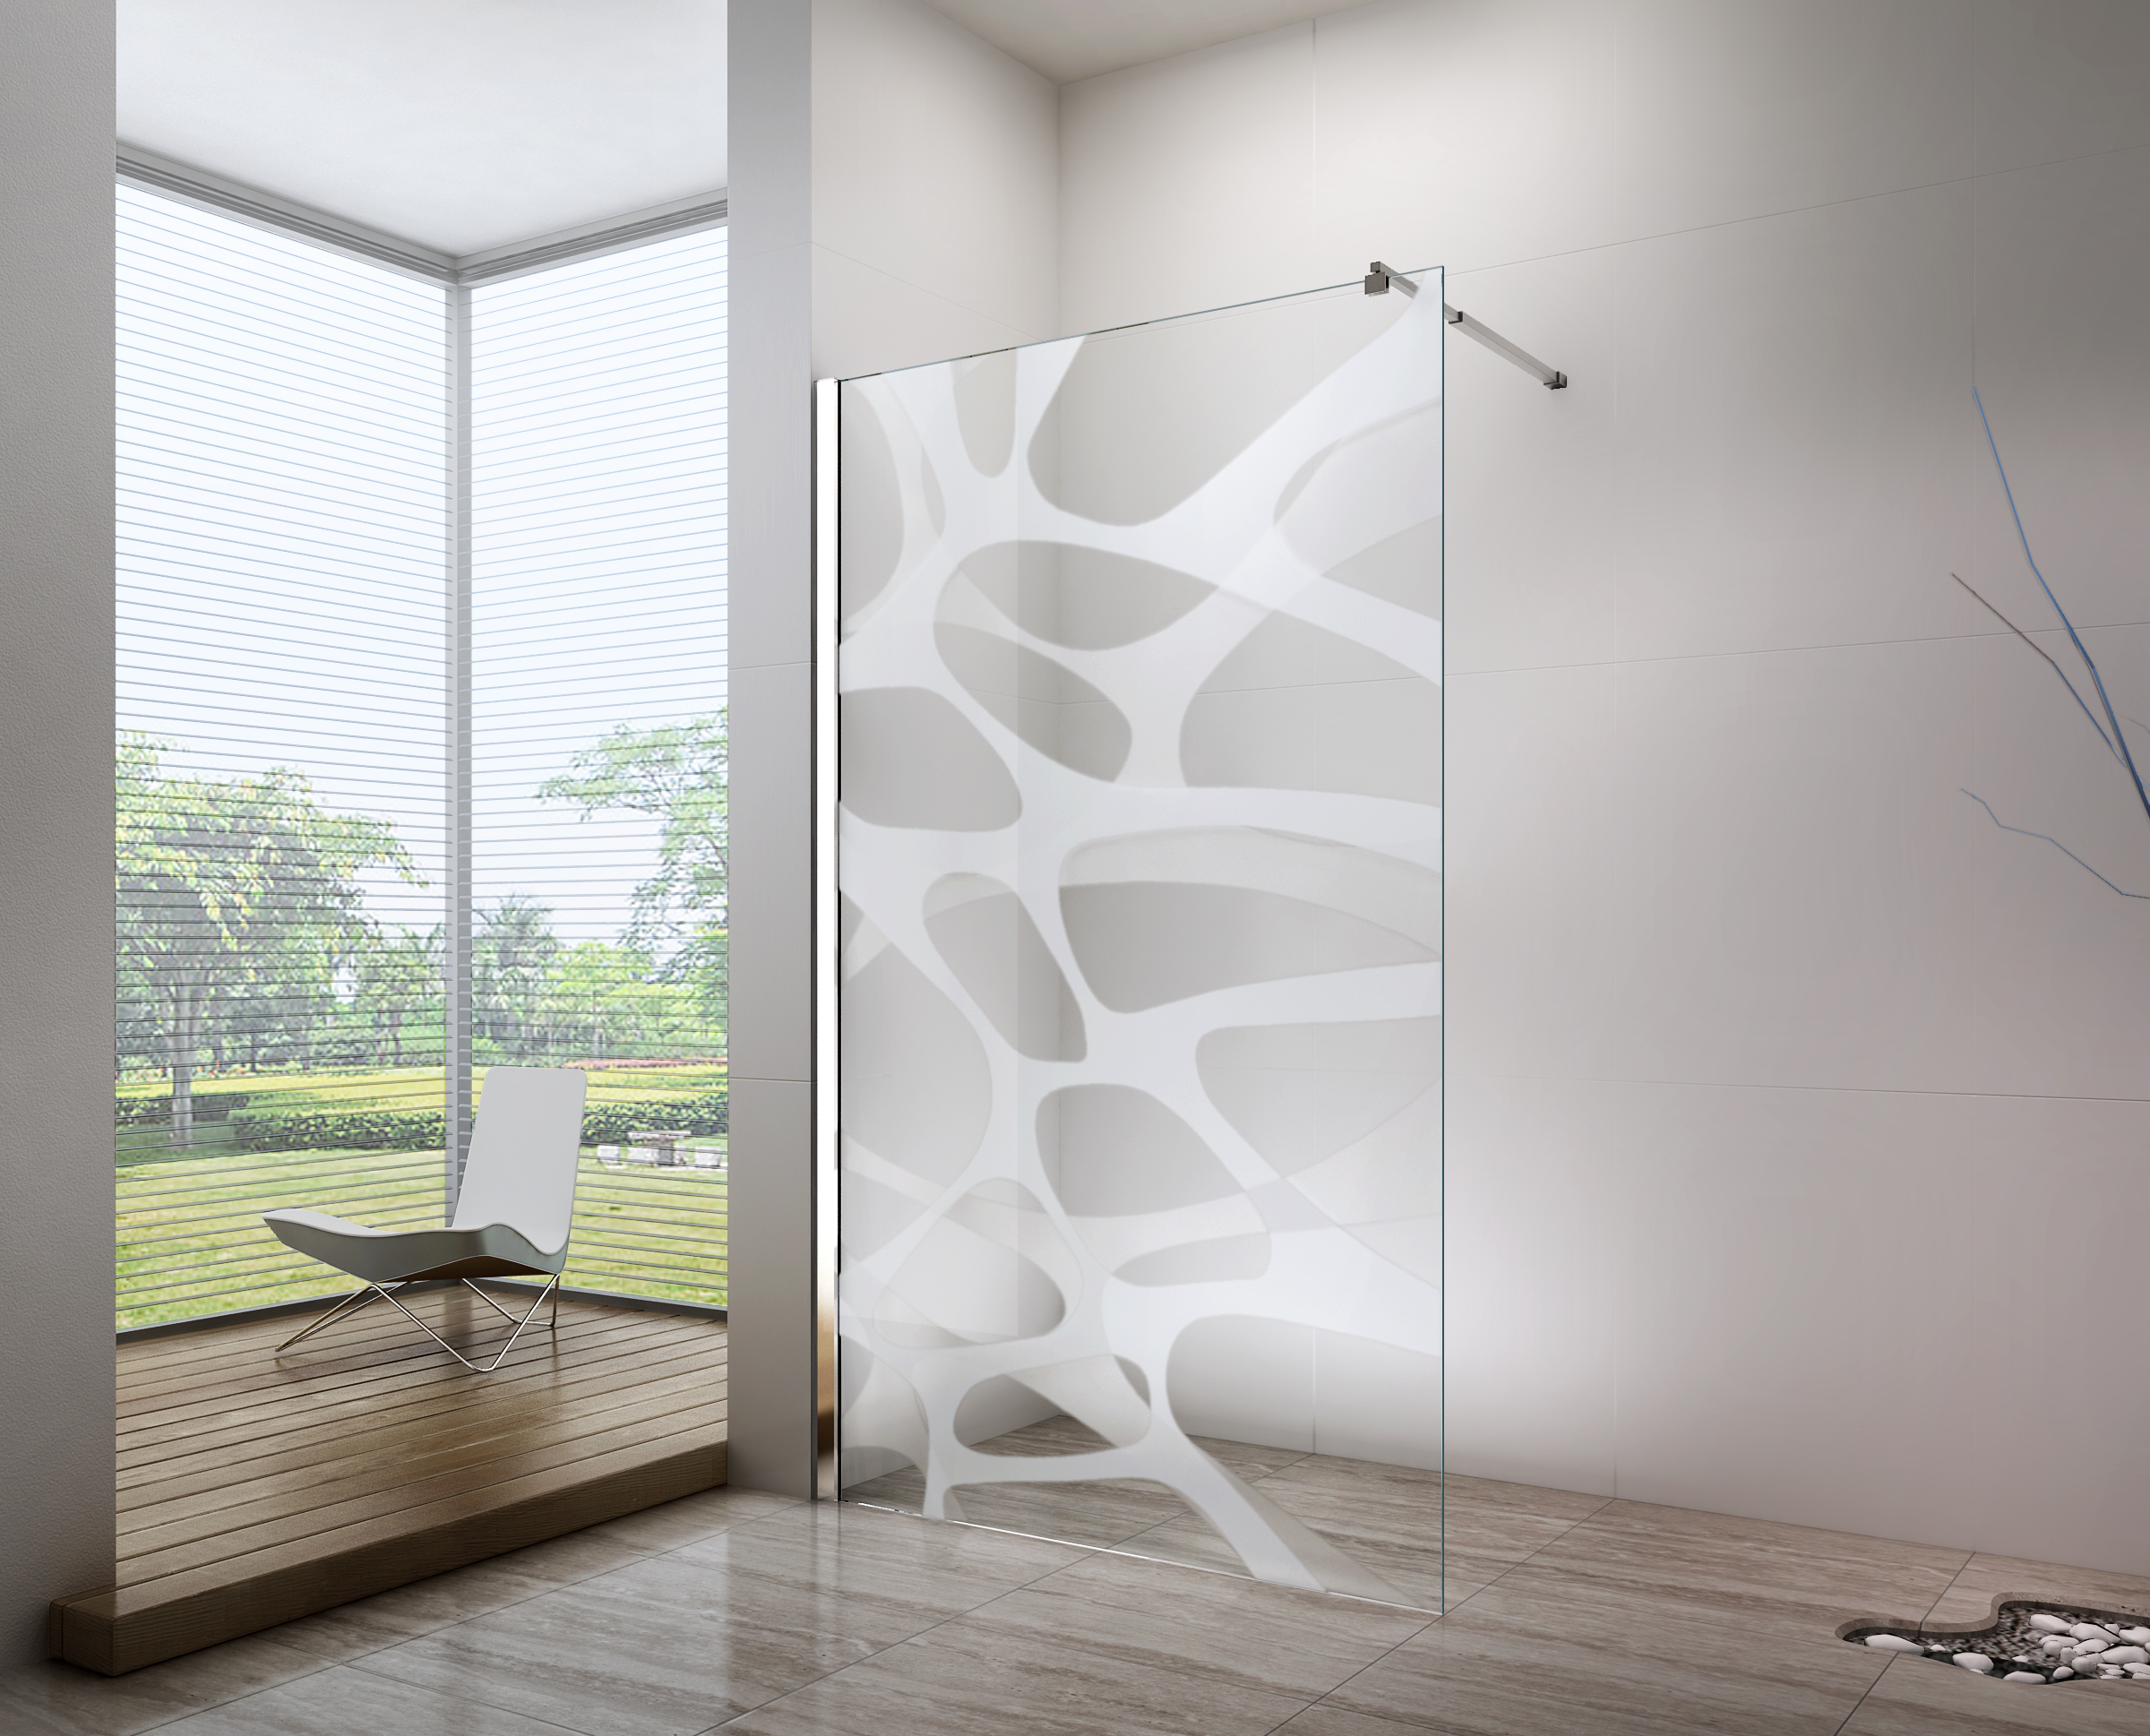 Nano coated Walk-in shower enclosure EX101  - 10mm tempered glass with Wave pattern - selectable width